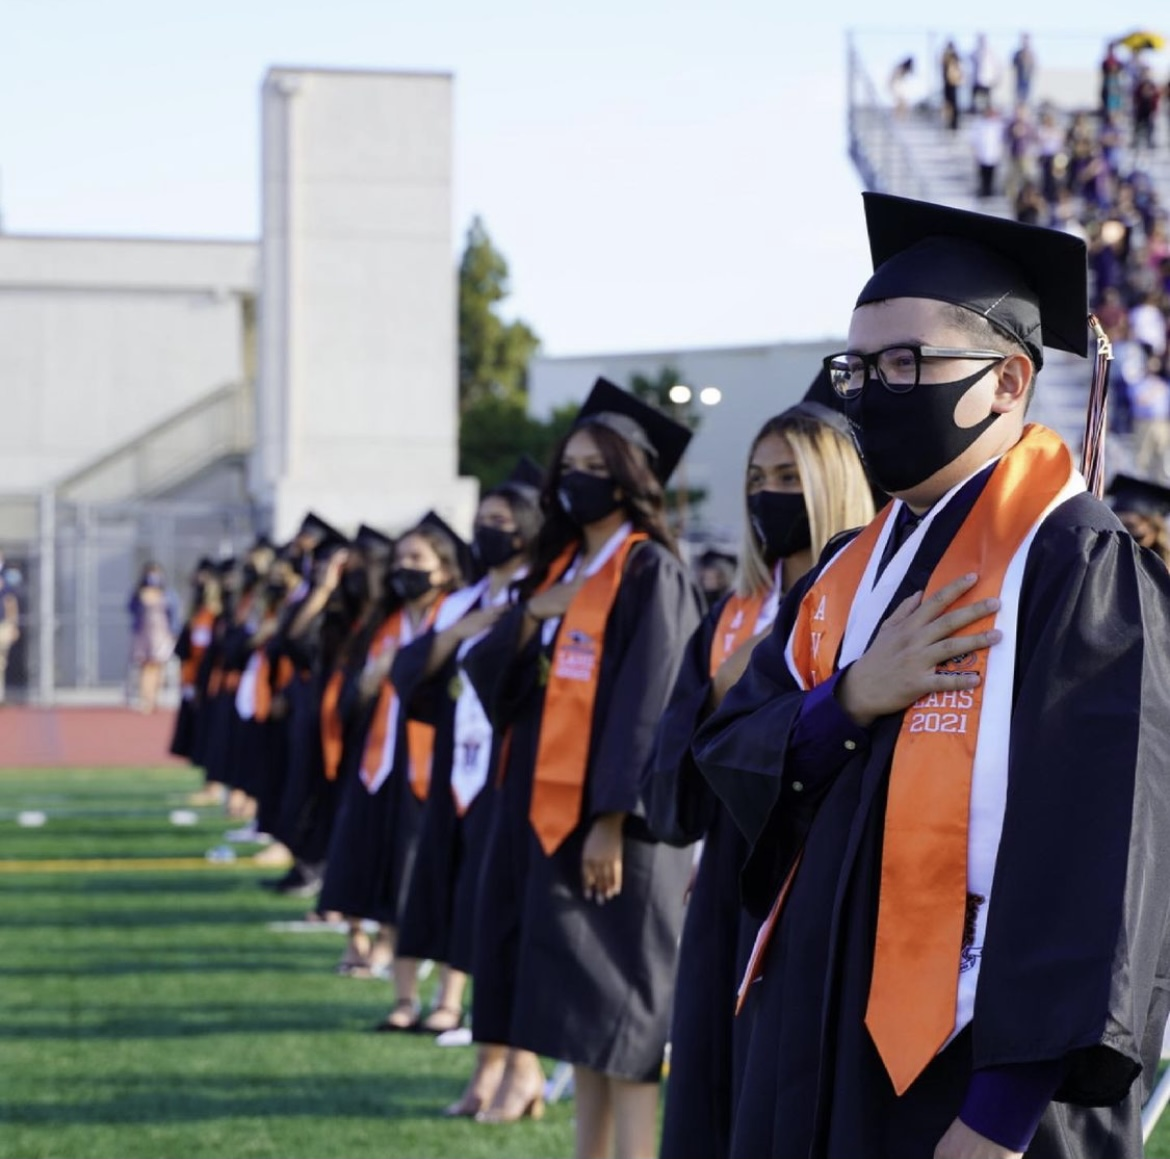 Caps off to the Class of 2021: a roundup of OC graduation pics from social media